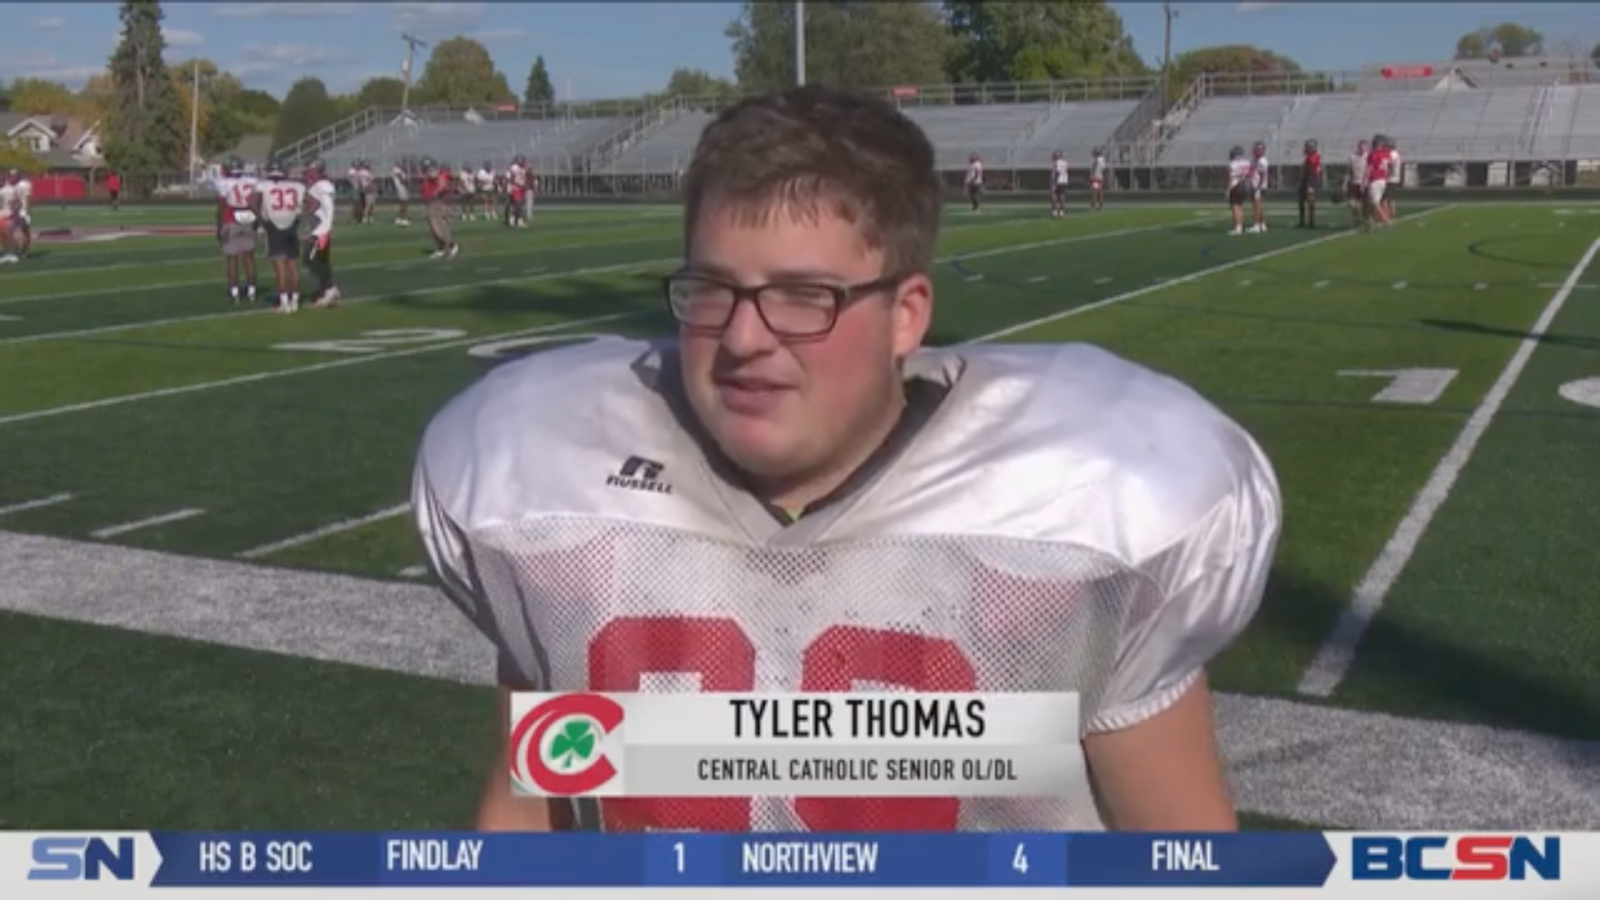 BCSN Video: Central Catholic's Tyler Thomas Gets His Moment in the Spotlight